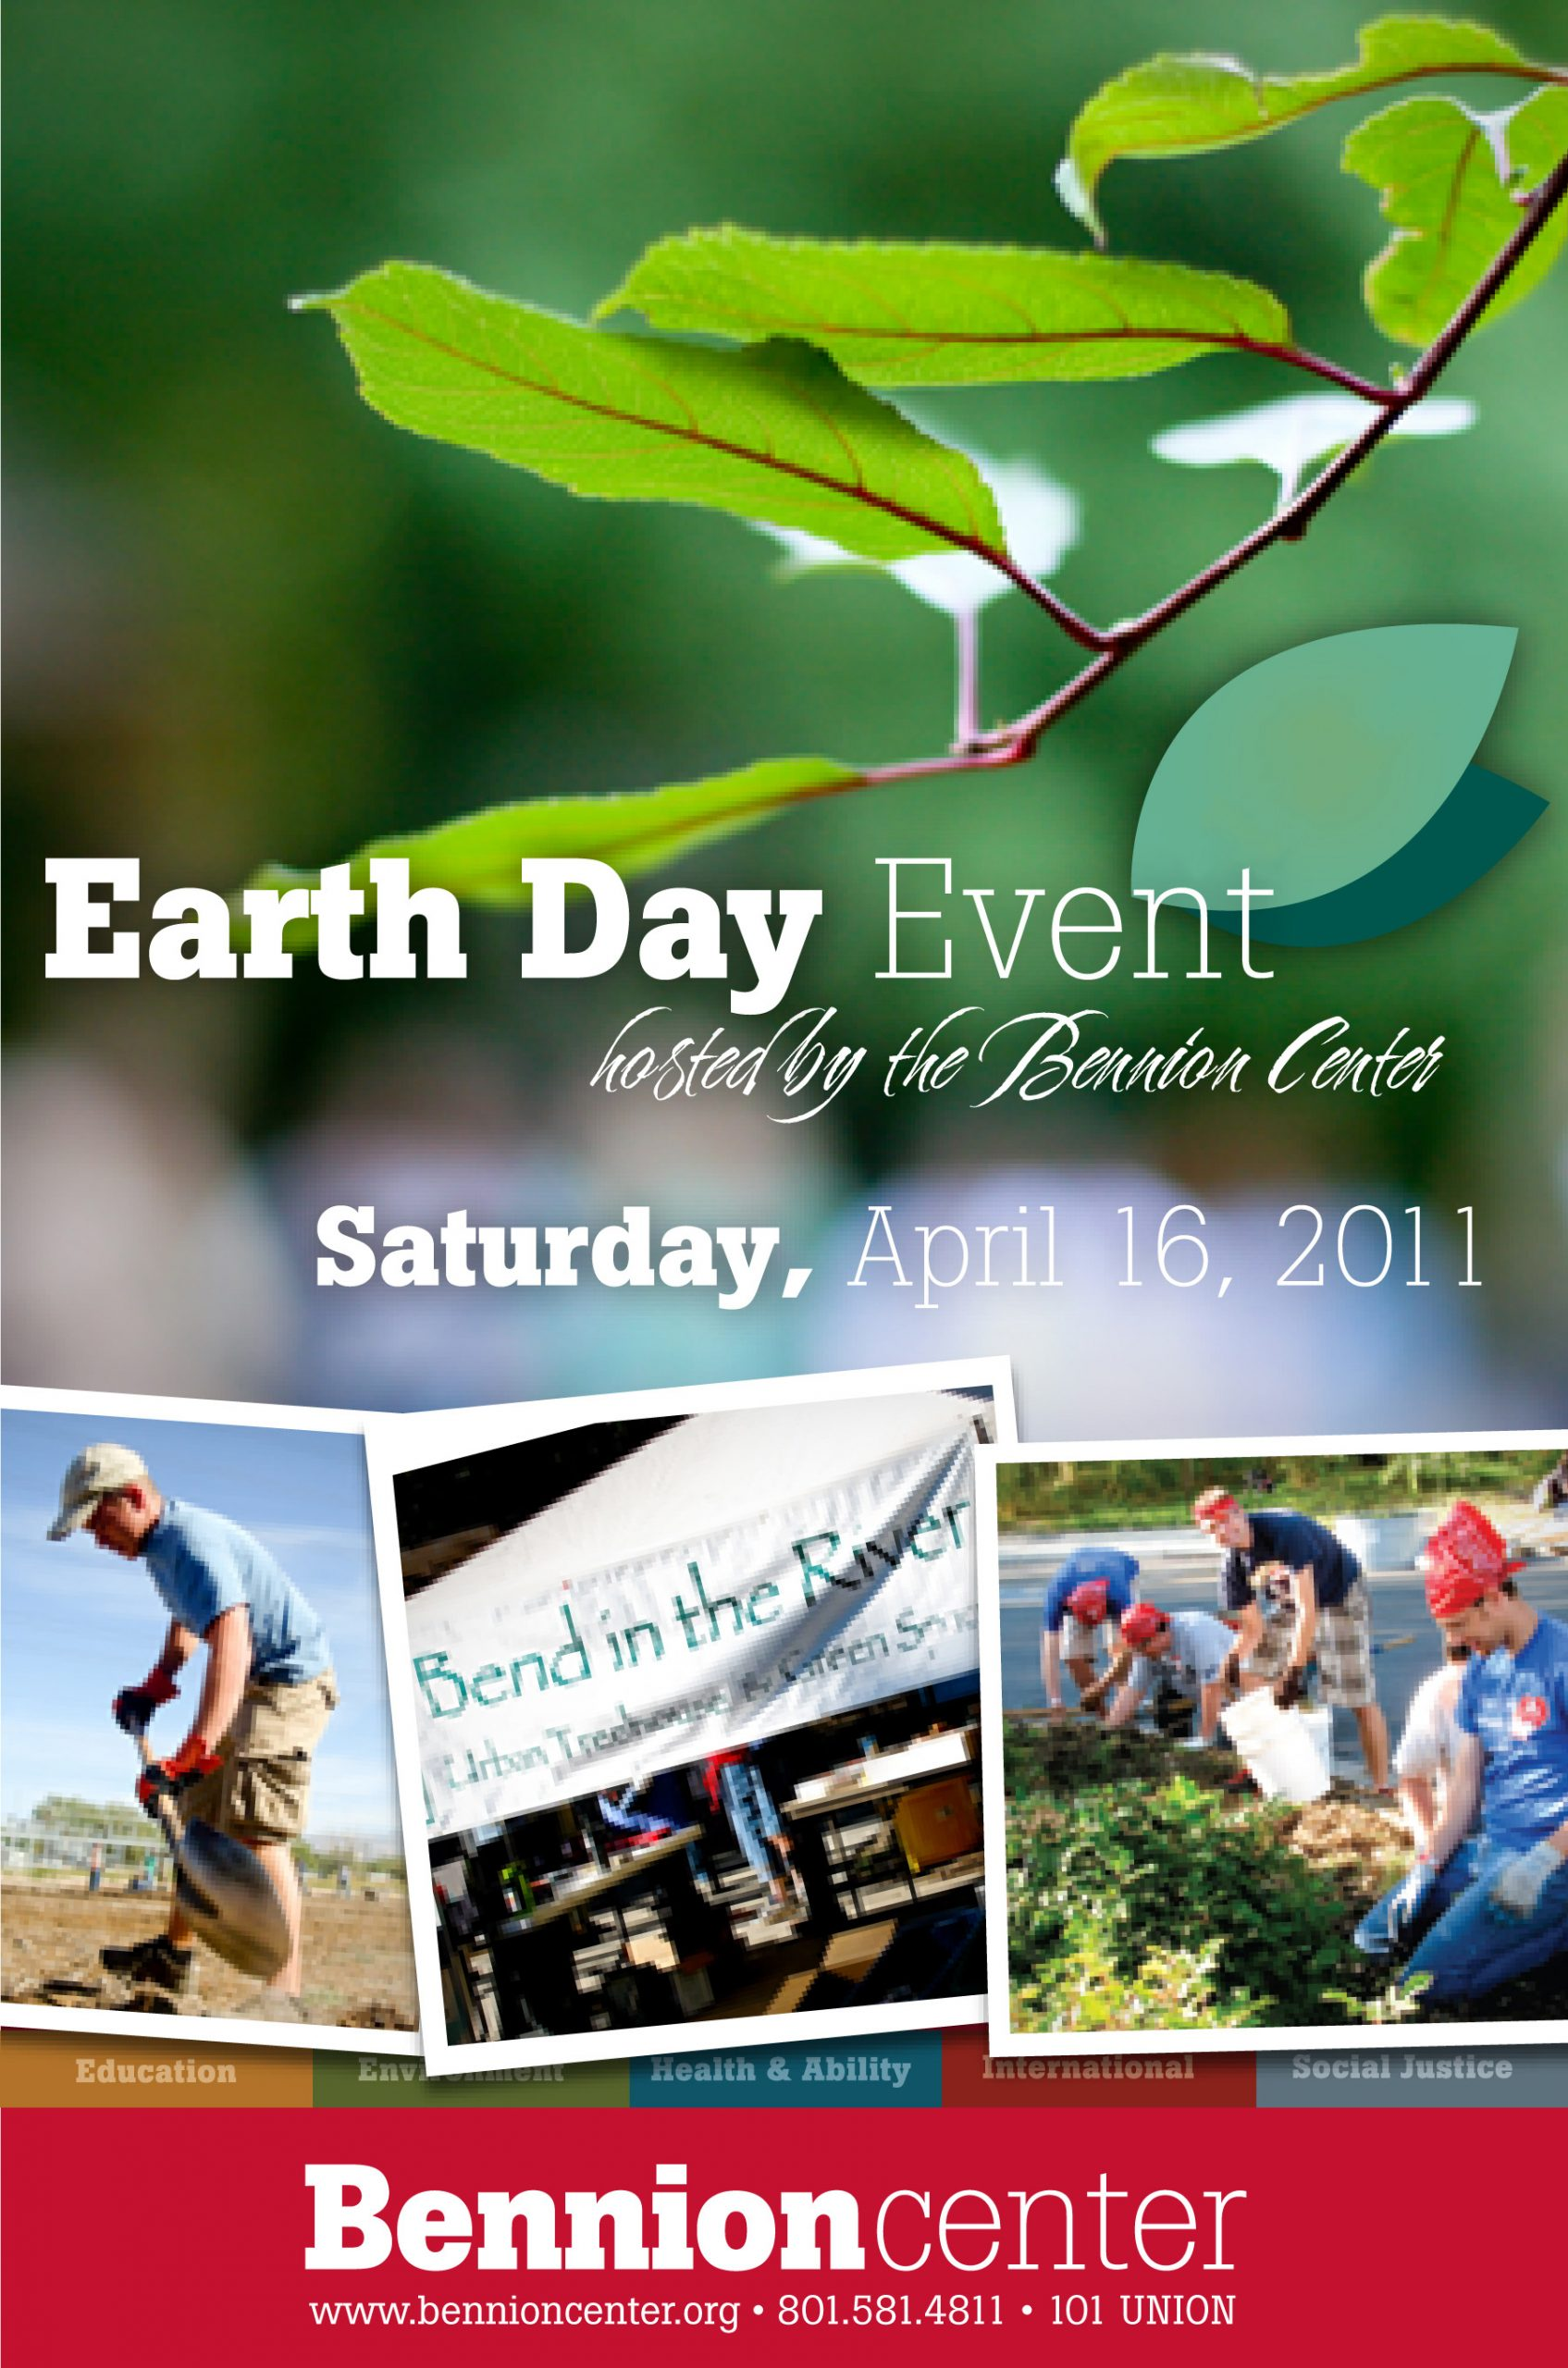 On Saturday, April 16 from 8:30 a.m. to 12:30 p.m., volunteers are asked to go to one of four service locations, where they will participate in a variety of environmentally-centered activities in honor of upcoming Earth Day. All events are free and open to the public. Pre-registration is not required, but it is encouraged.